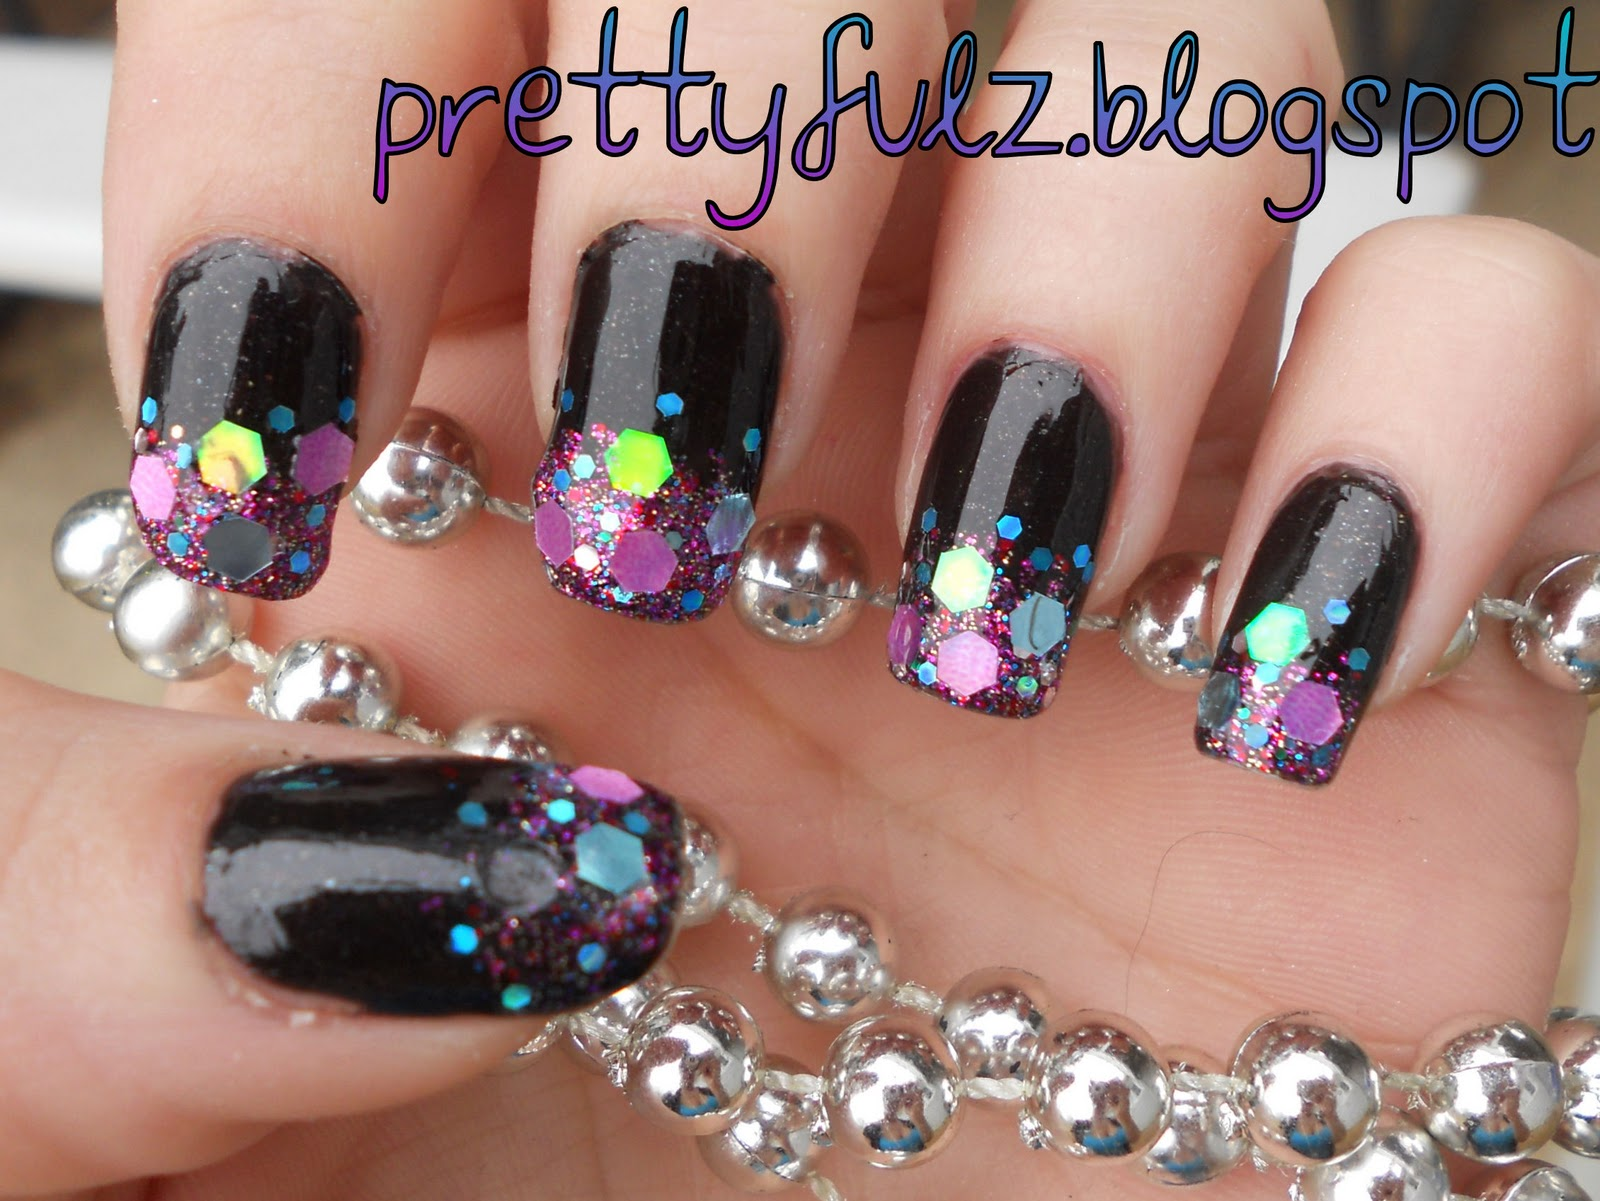 Enchanting Cute Nail Designs For Prom Picture Collection - Nail Art ...